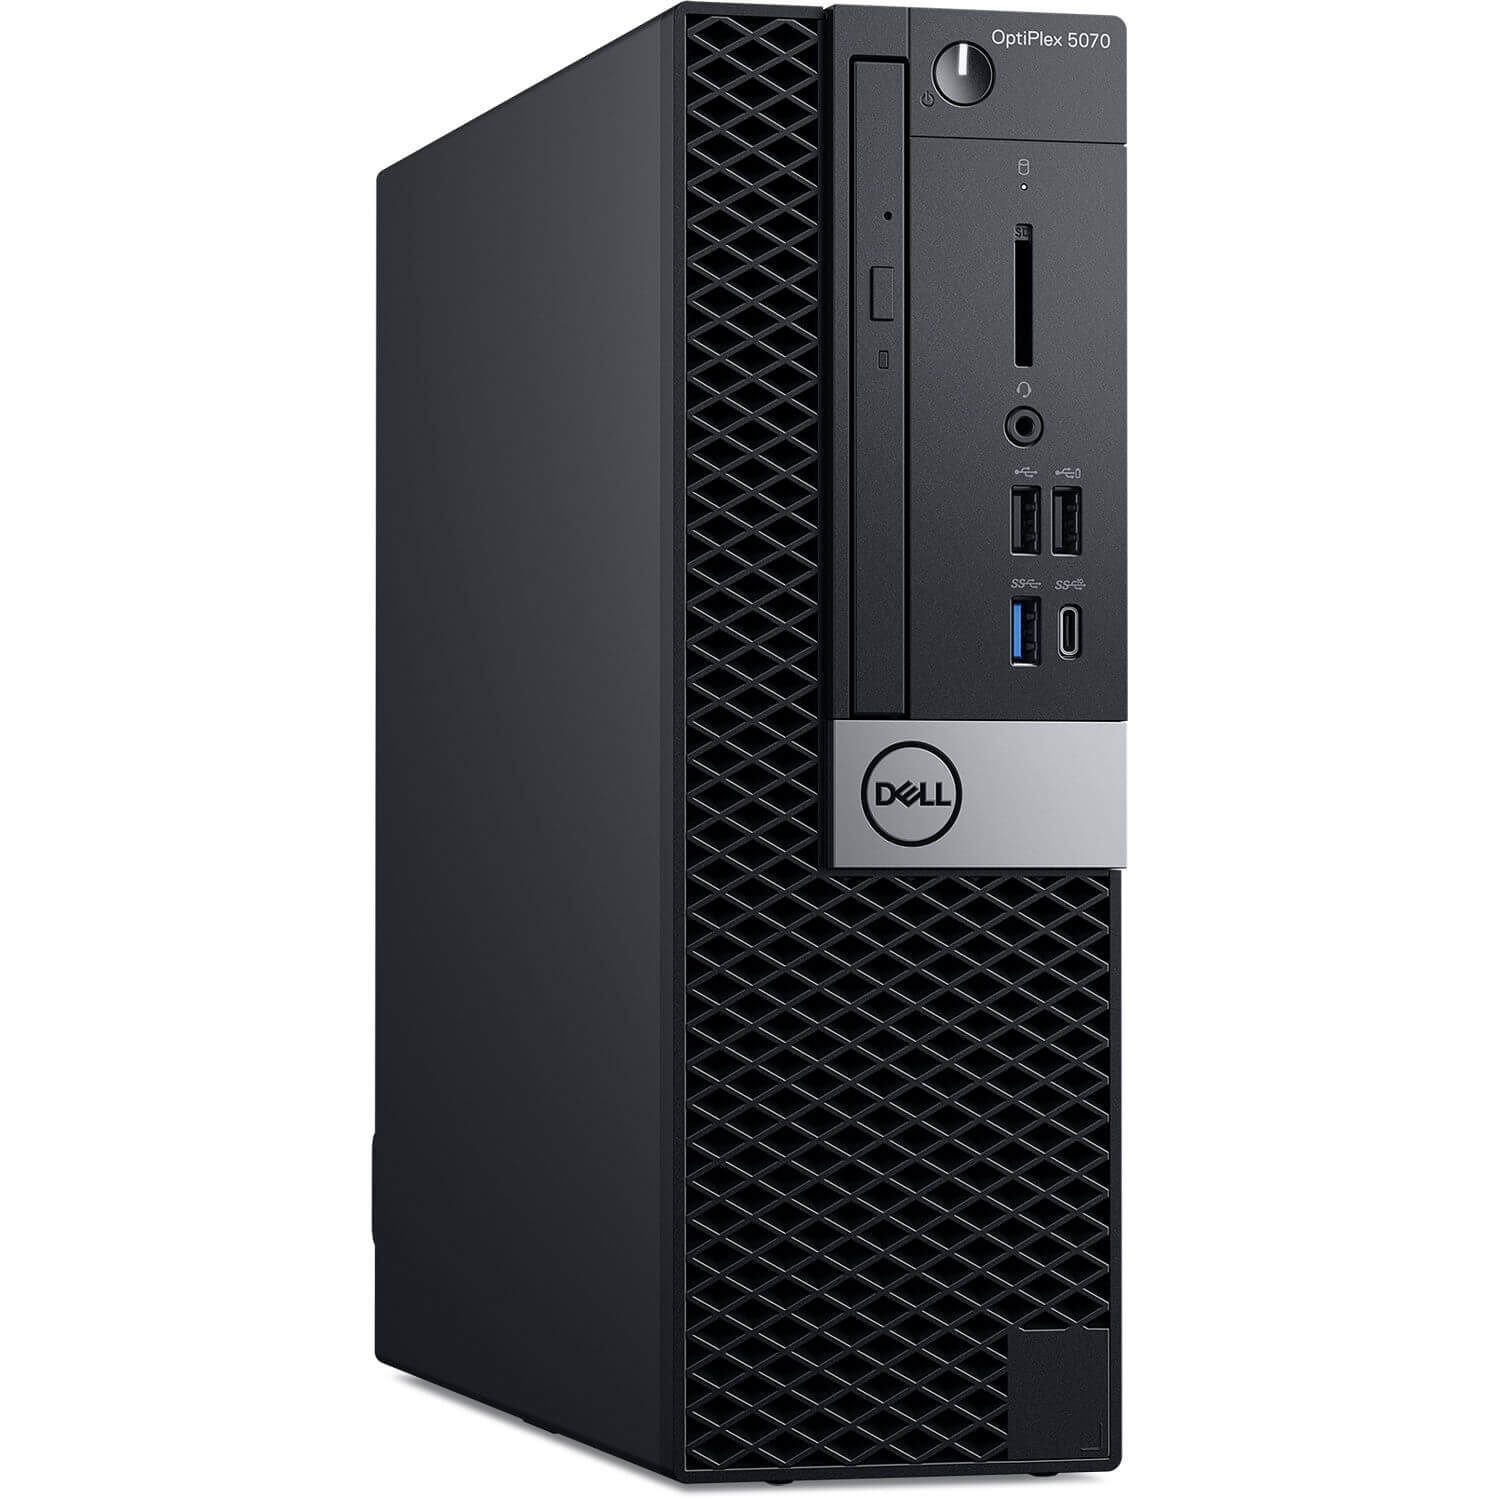 Dell OptiPlex 5070 SFF 42OT570001 (i5-9500/4GB RAM/1TB HDD/DVDRW/K+M/Linux)